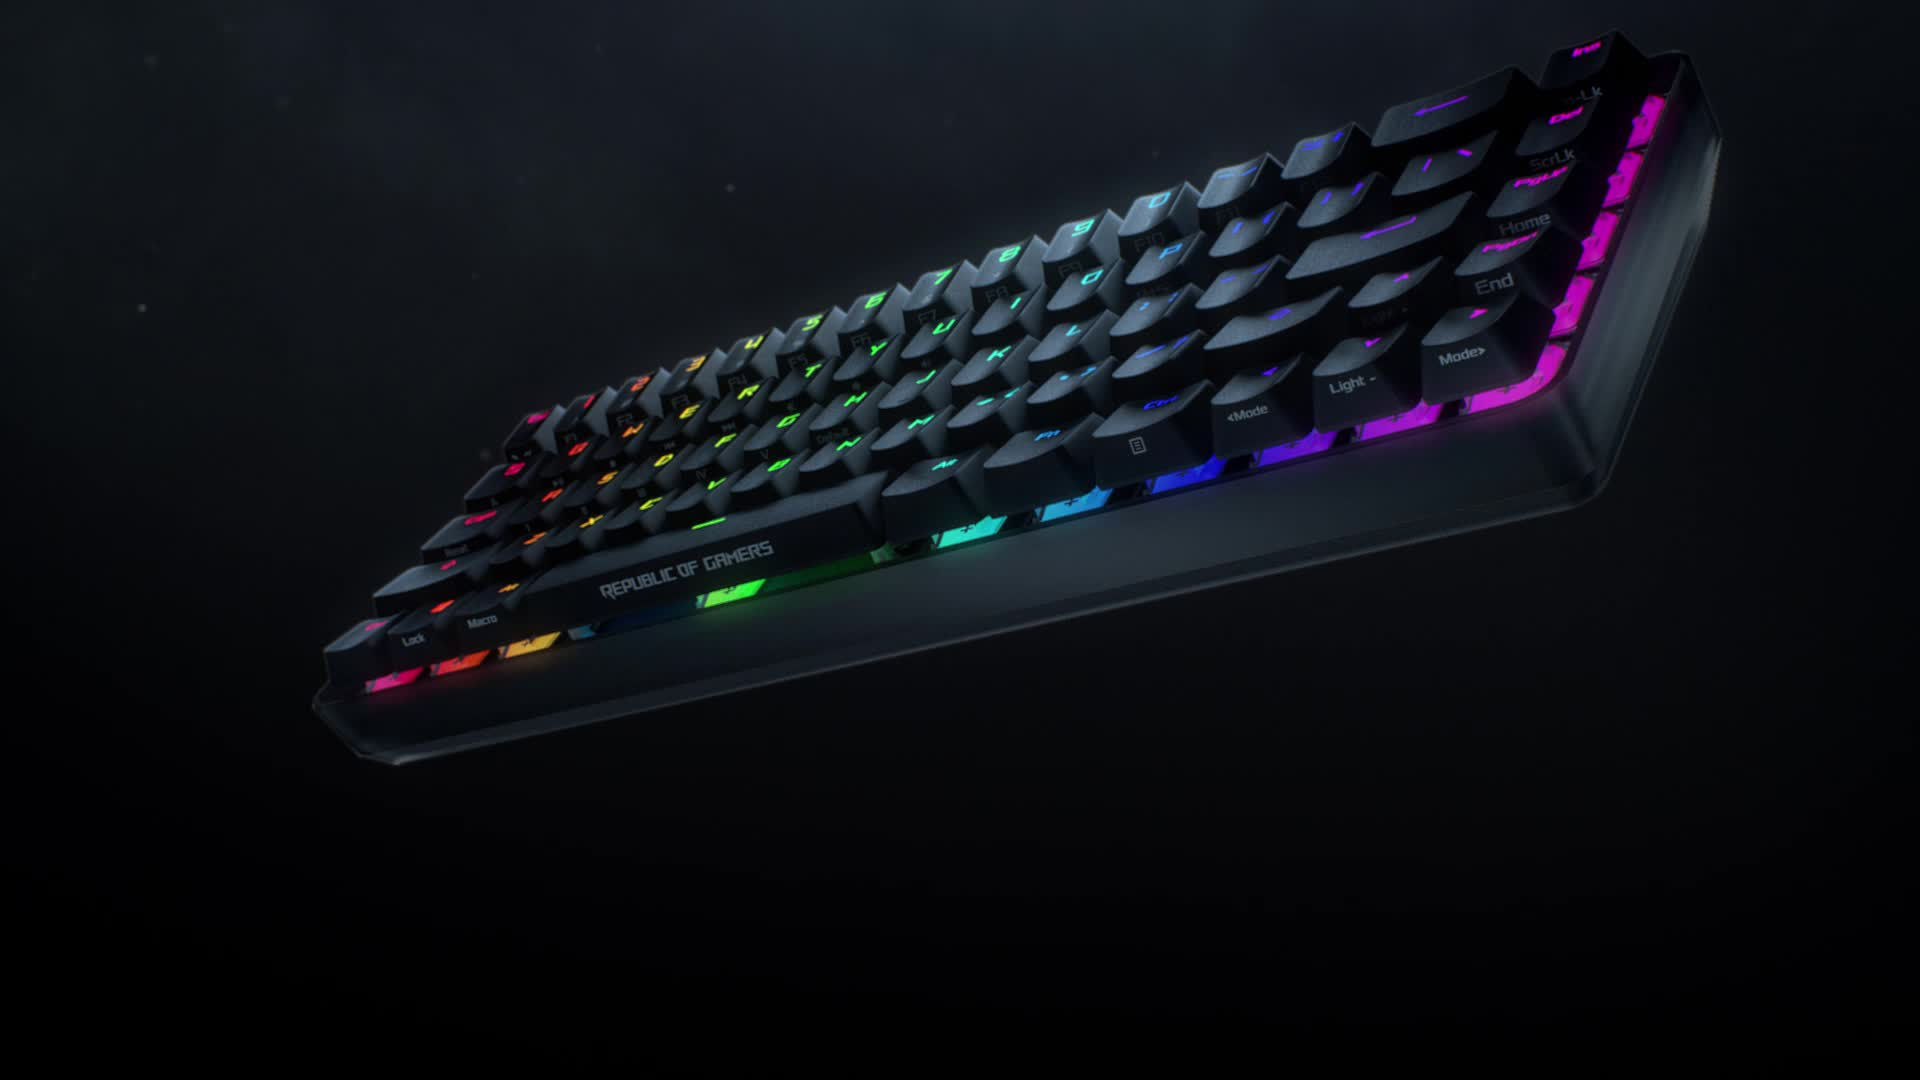 ASUS ROG Falchion Wireless 65% Mechanical Gaming Keyboard (68 Keys, Aura Sync RGB, Extended Battery Life, Interactive Touch Panel, PBT Keycaps, Cherry MX Red Switches, Keyboard Cover Case)